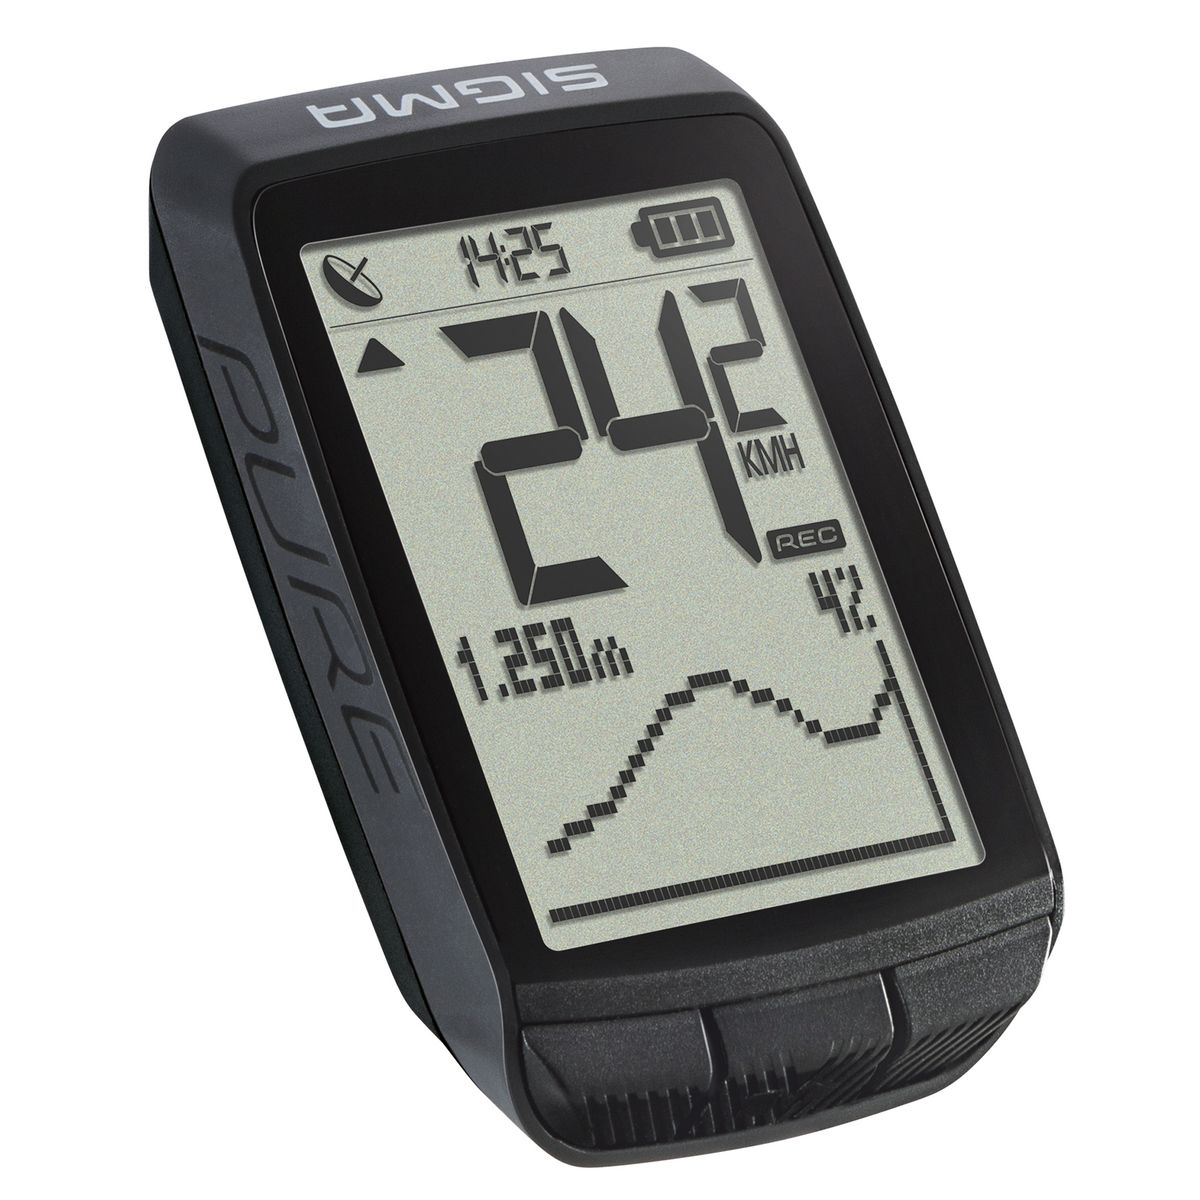 Pure GPS bike computer with integrated altimeter